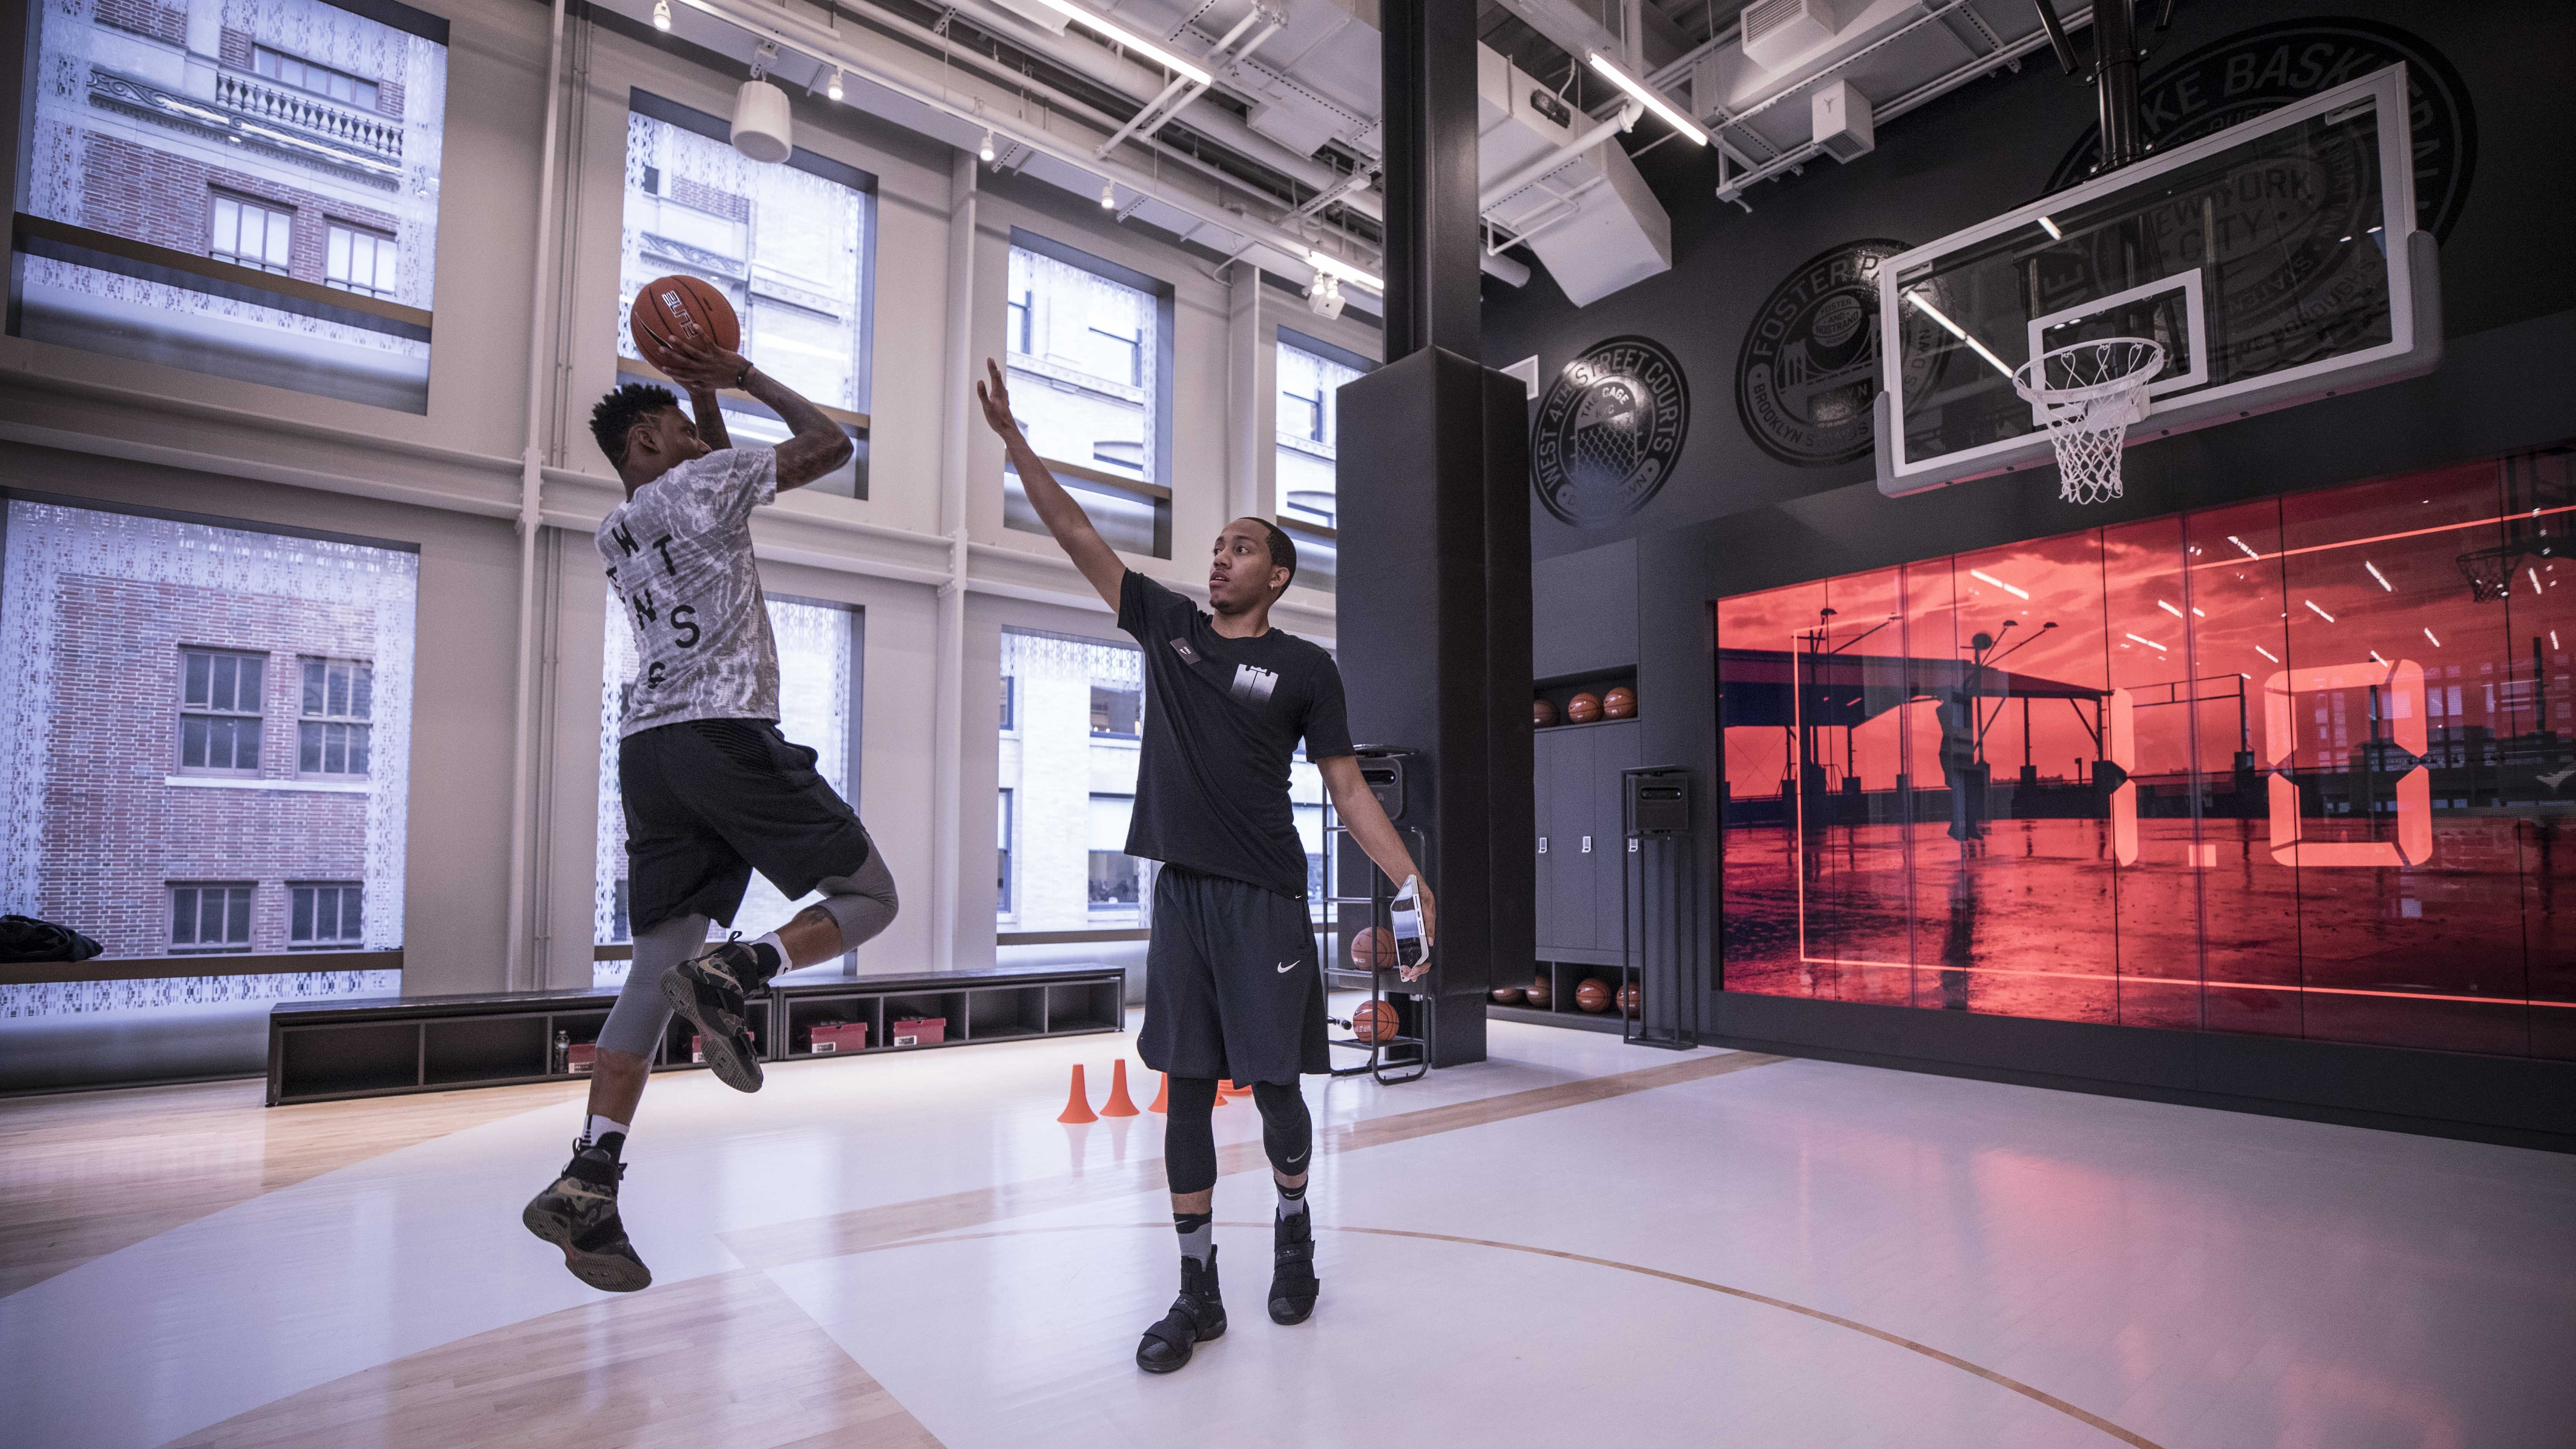 The basketball trial area in Nike's new Soho, New York, store